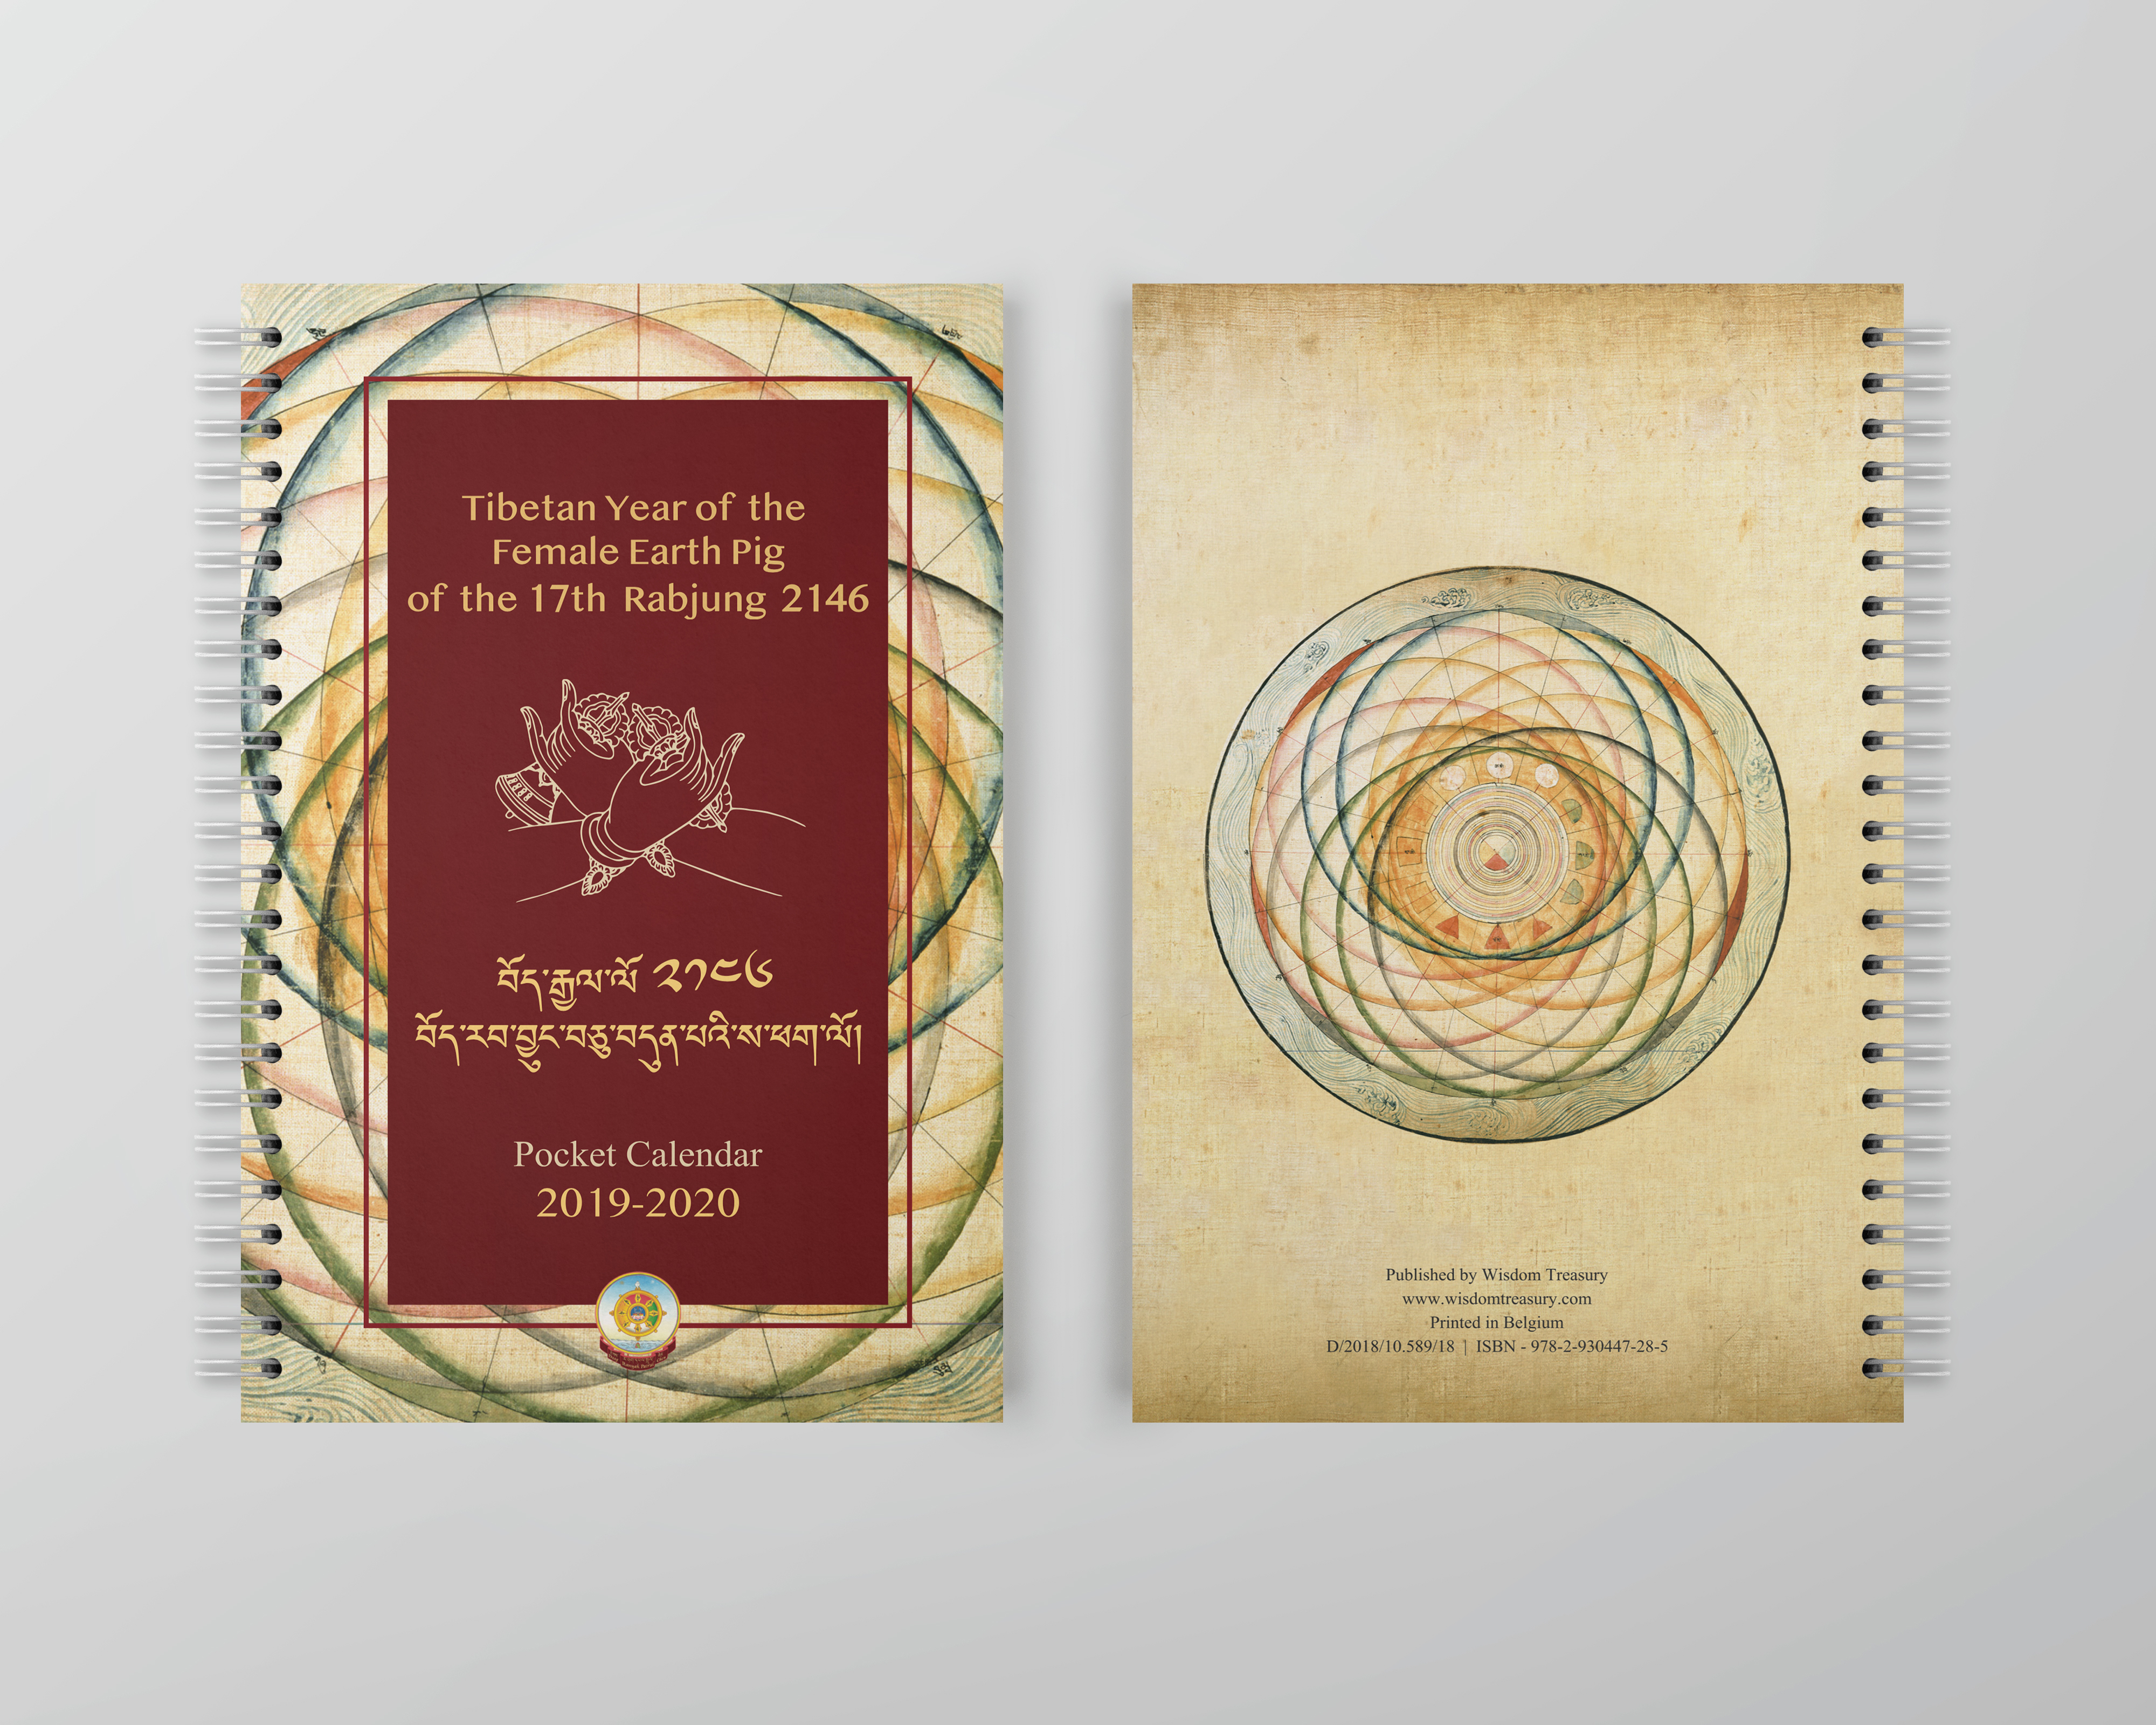 Tibetan Calendar 2020 Tibetan Pocket Calendar 2019 – 2020 – Wisdom Treasury Publishing House